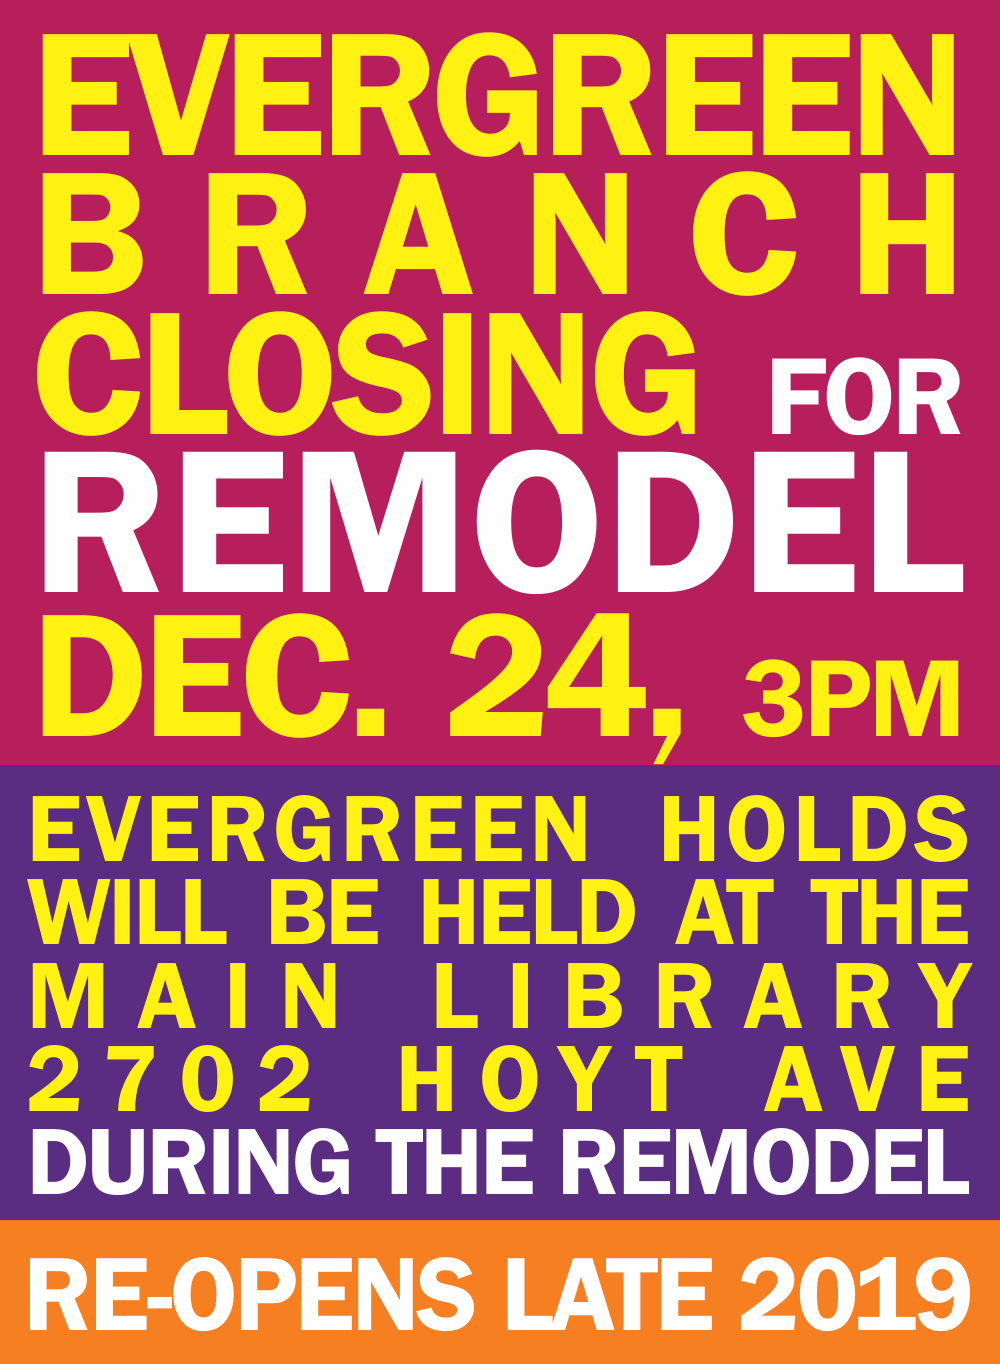 Evergreen Branch closes for remodelling on Dec. 24 Holds will be held at Main Library 2702 Hoyt Evergreen will re-open late 2019